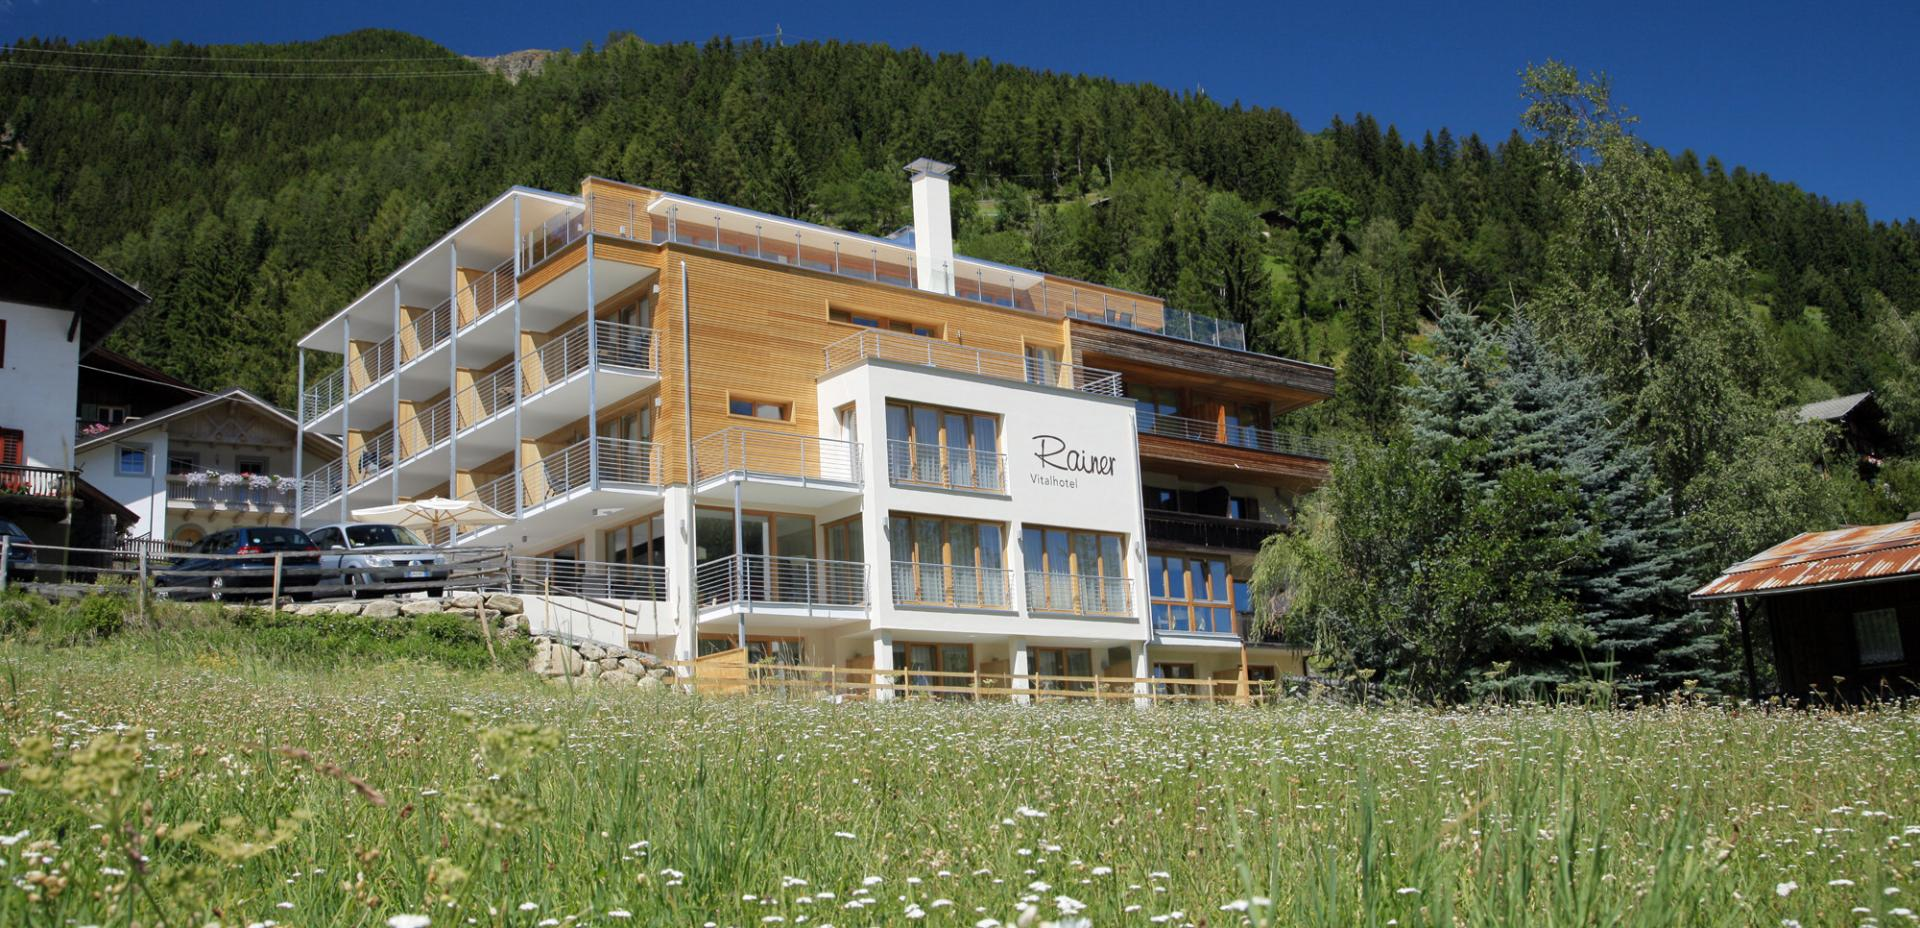 Vital-Hotel Rainer in Val d'Ultimo